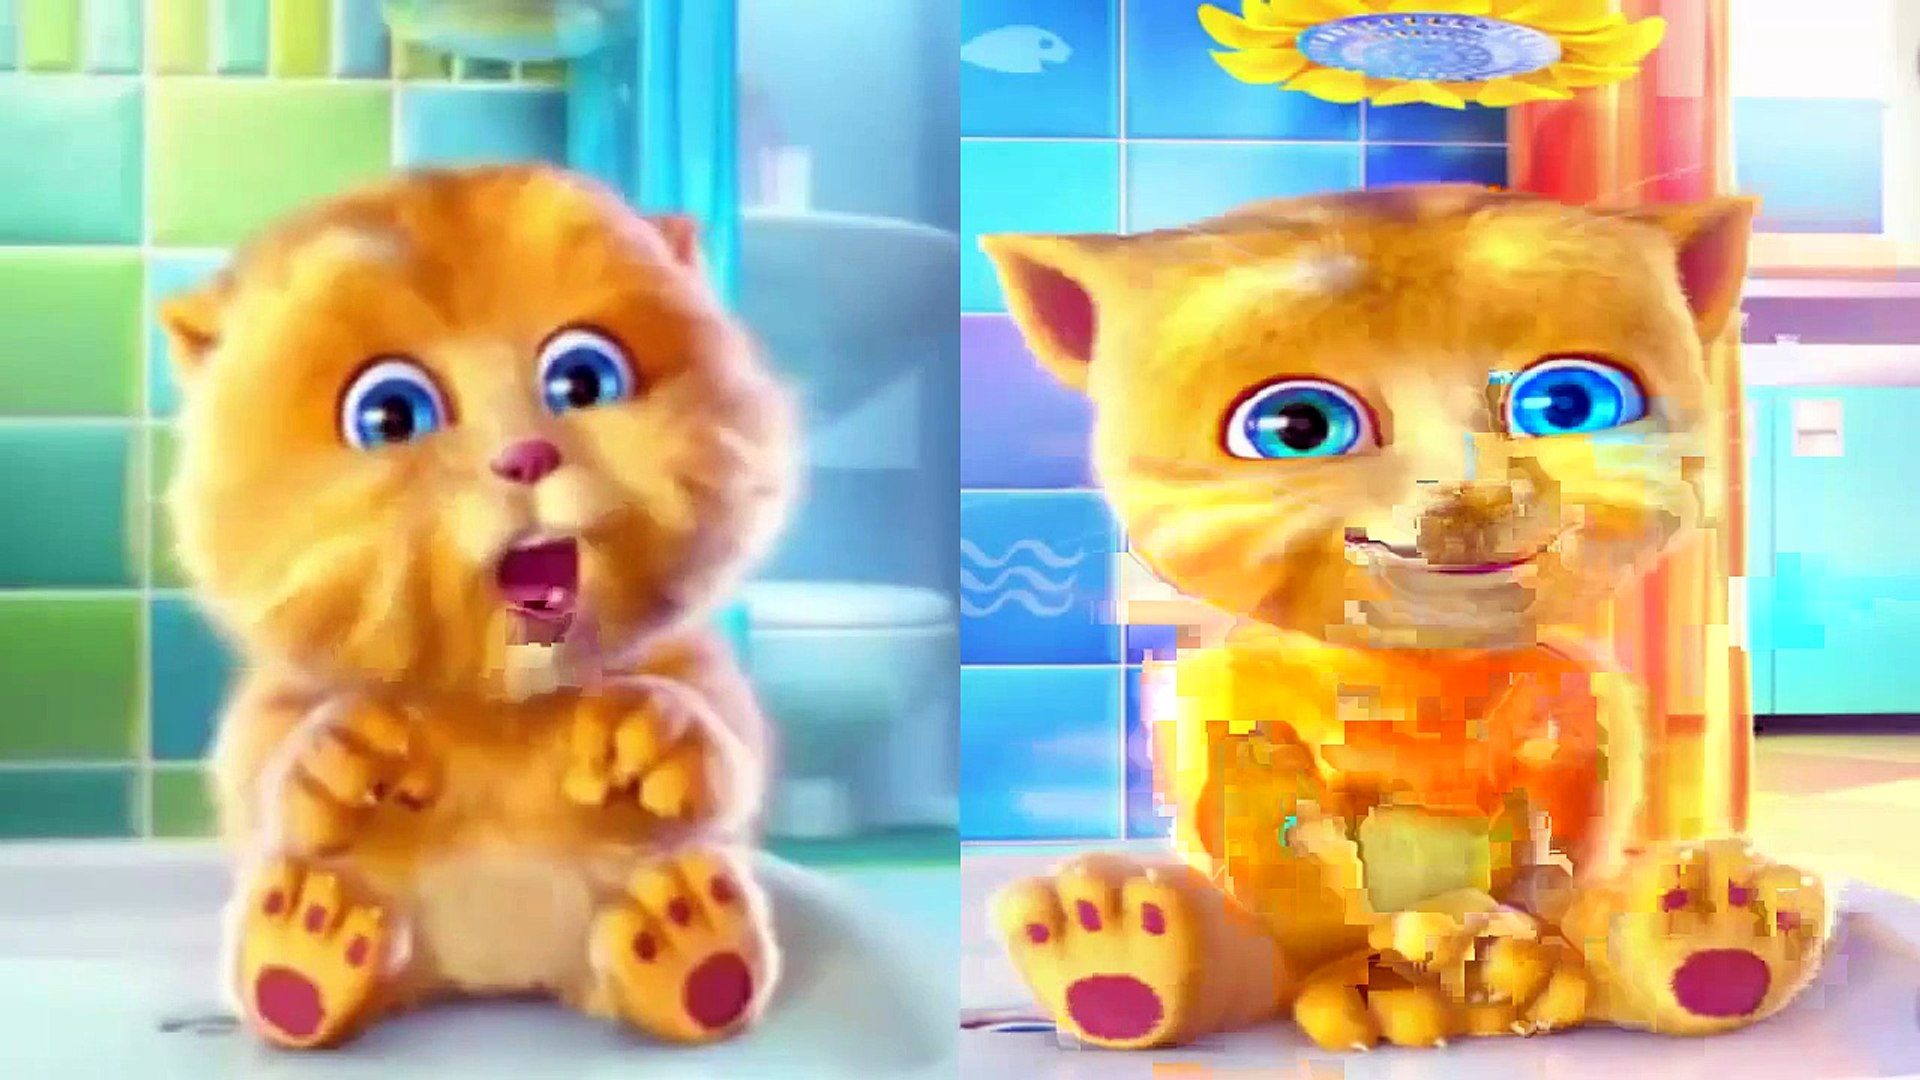 053 ABC song Funny Cat Talking Ginger ABC song for baby Kids song